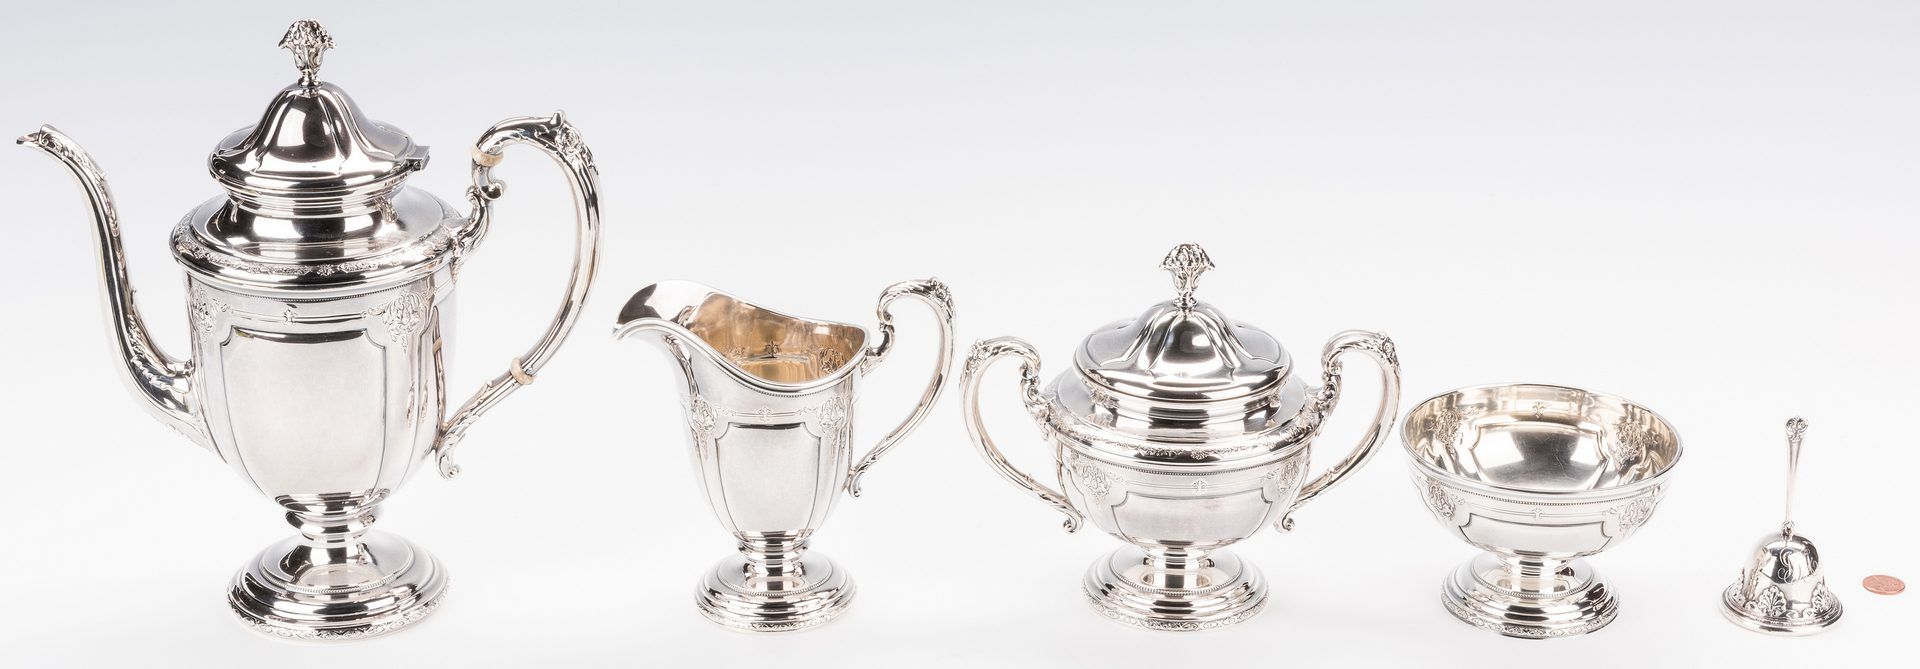 Lot 396: Towle sterling tea set, Royal Windsor, with bell and tray